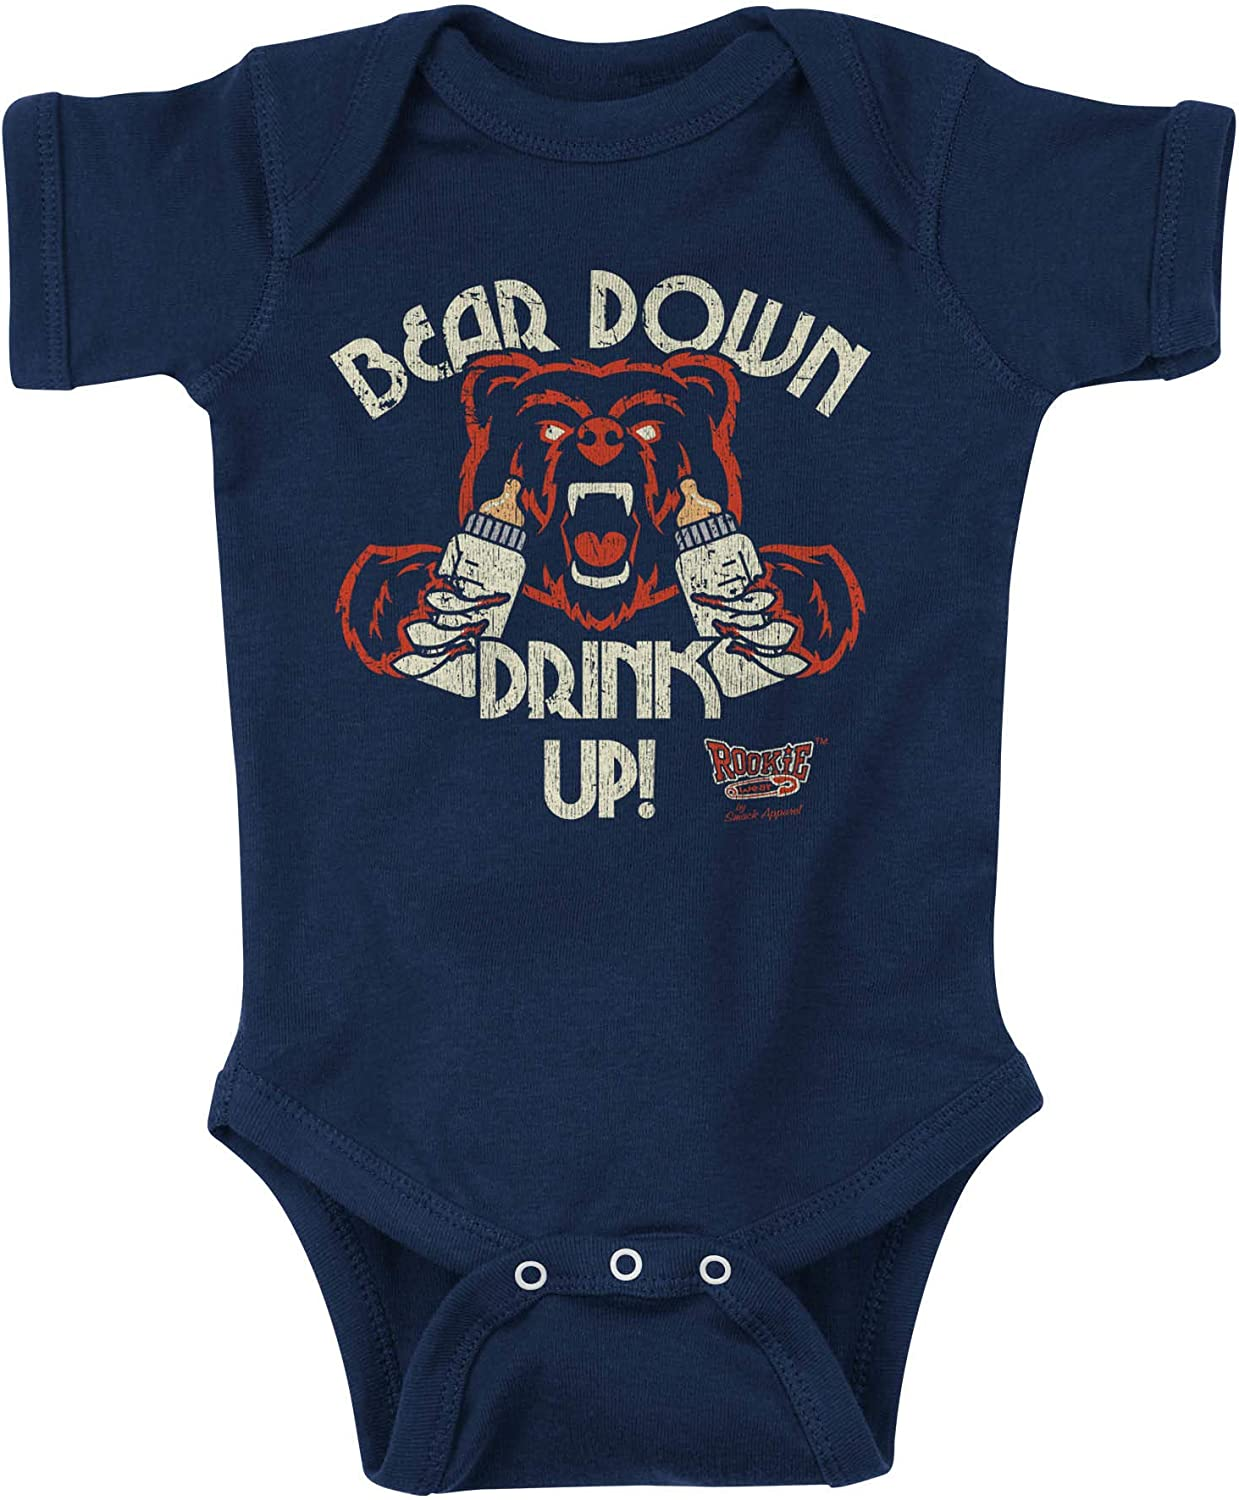 Rookie Wear by Smack Apparel Chicago Football Fans NB-4T Bear Down Drink Up Navy Onesie or Toddler Tee